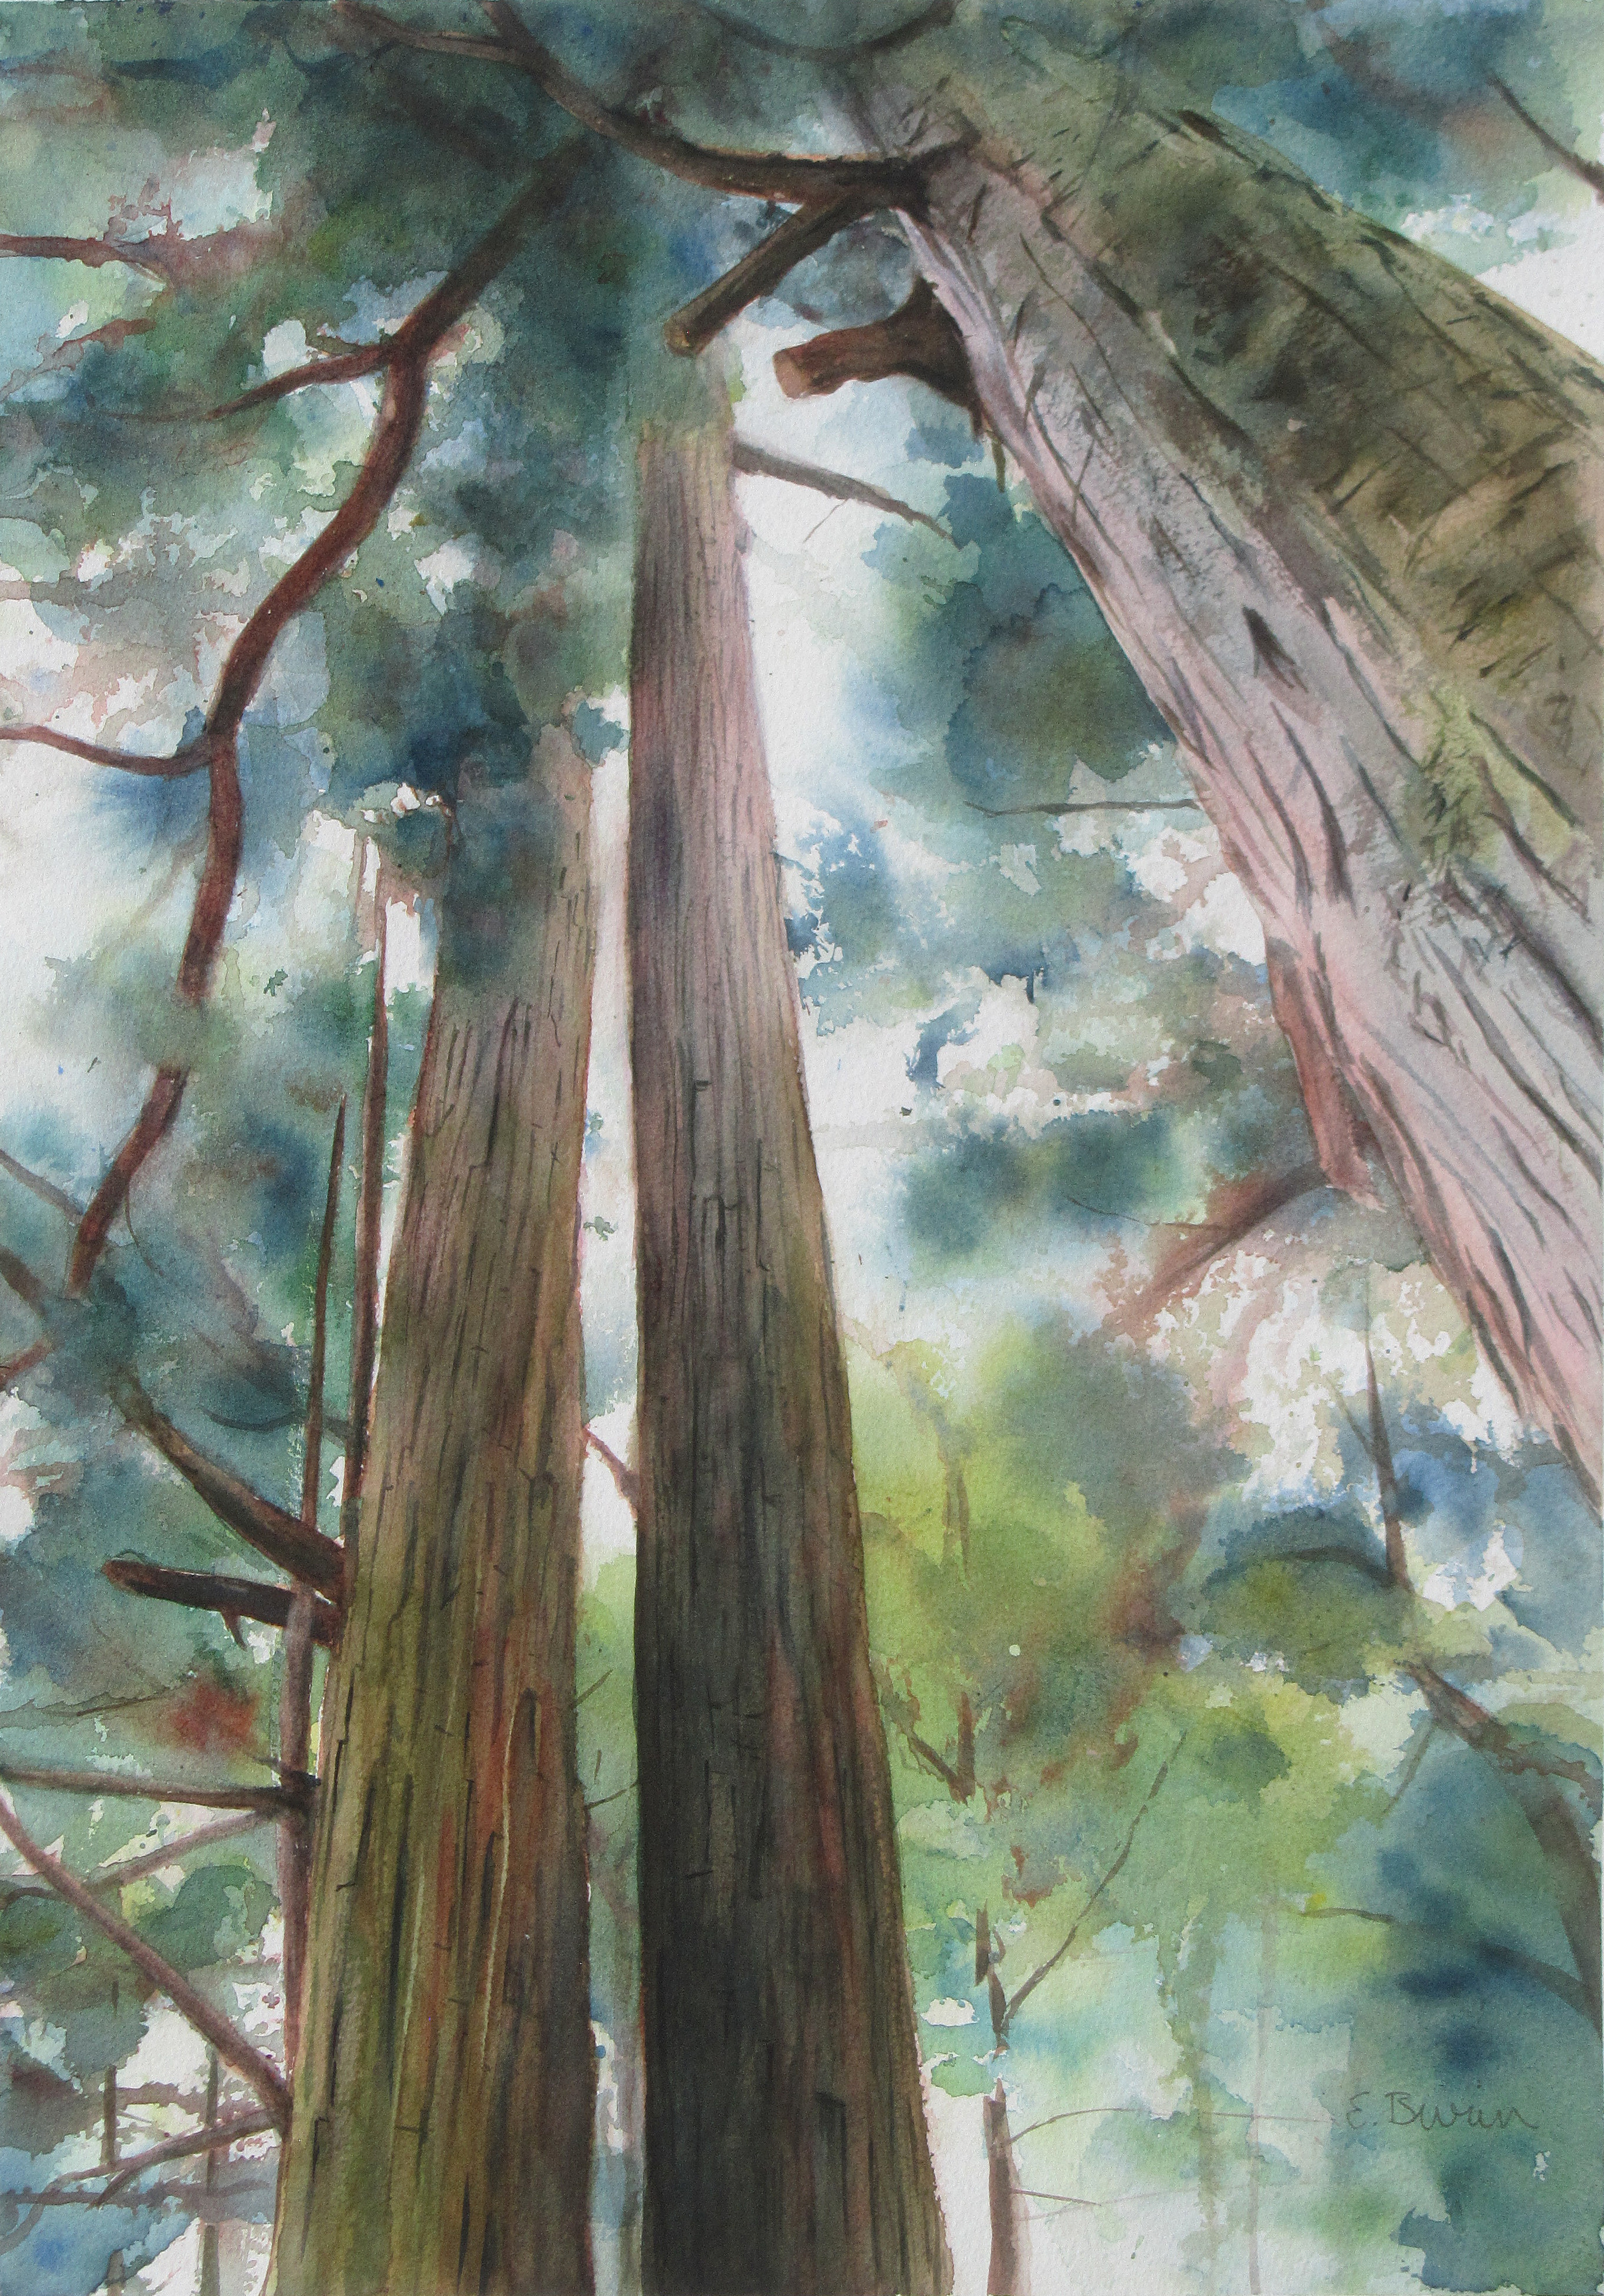 Watercolor painting of Japanese cypress trees seen from below.